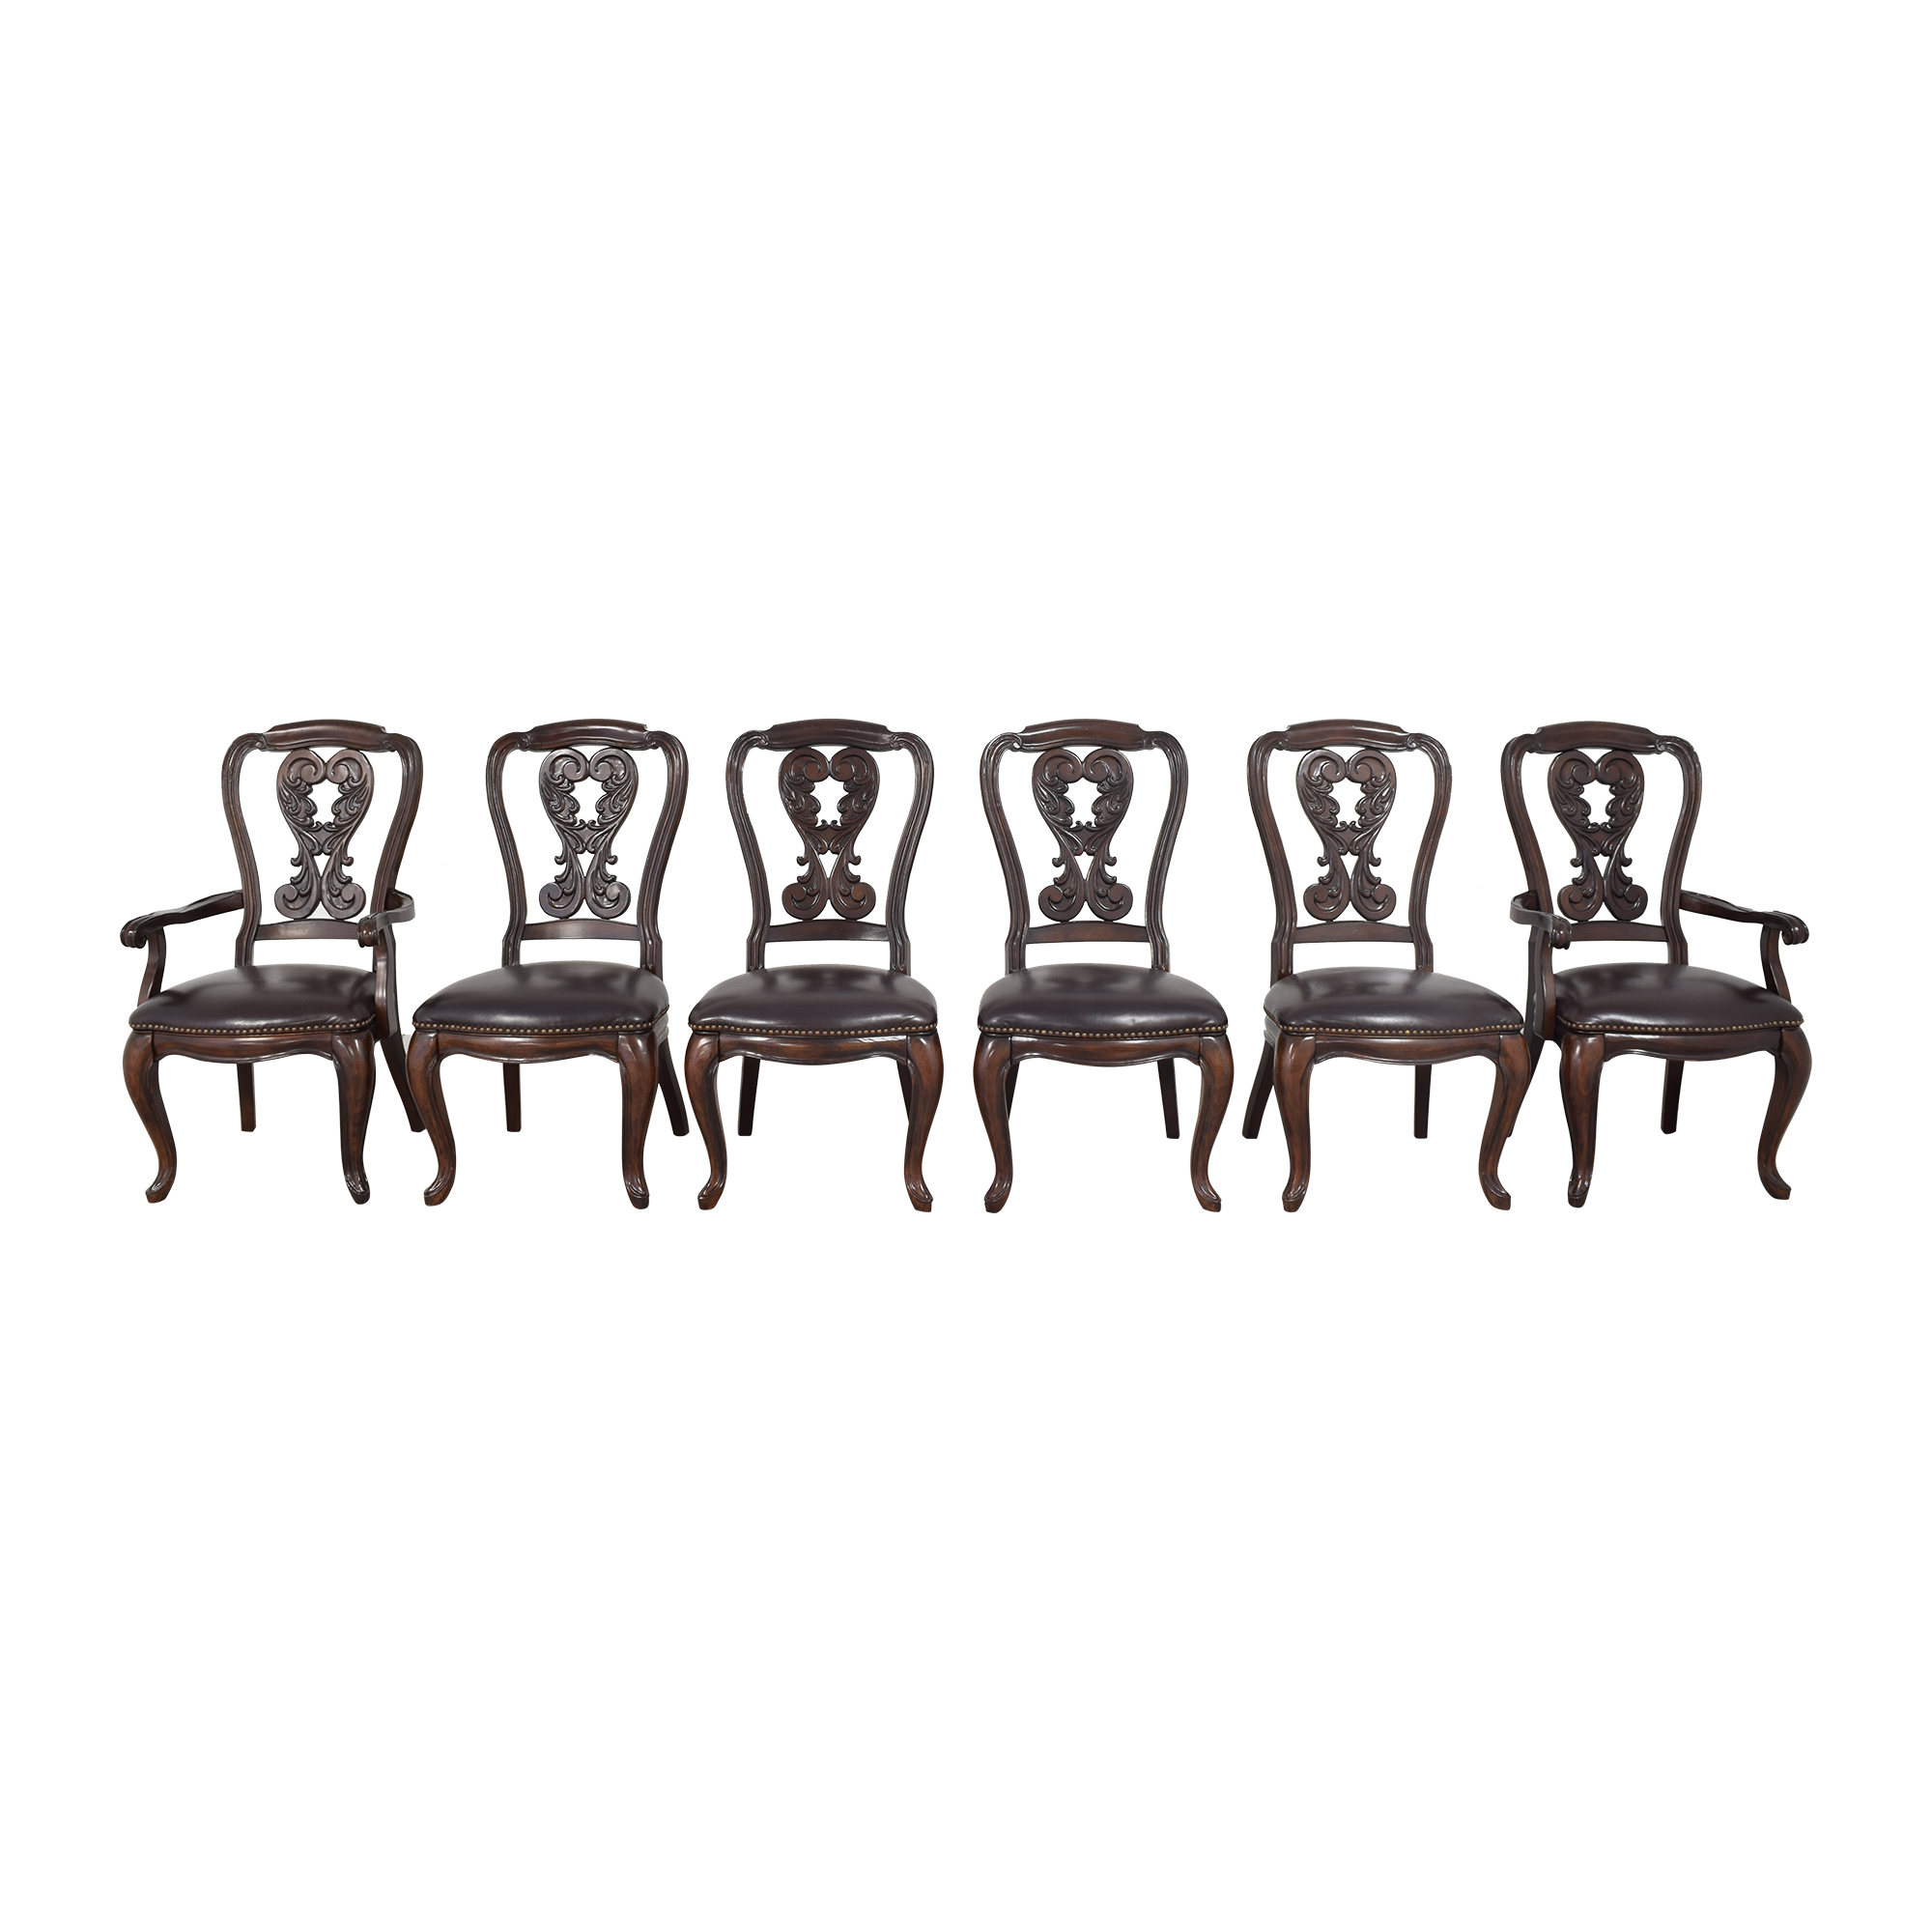 Markor International Markor International Dining Chairs Dining Chairs